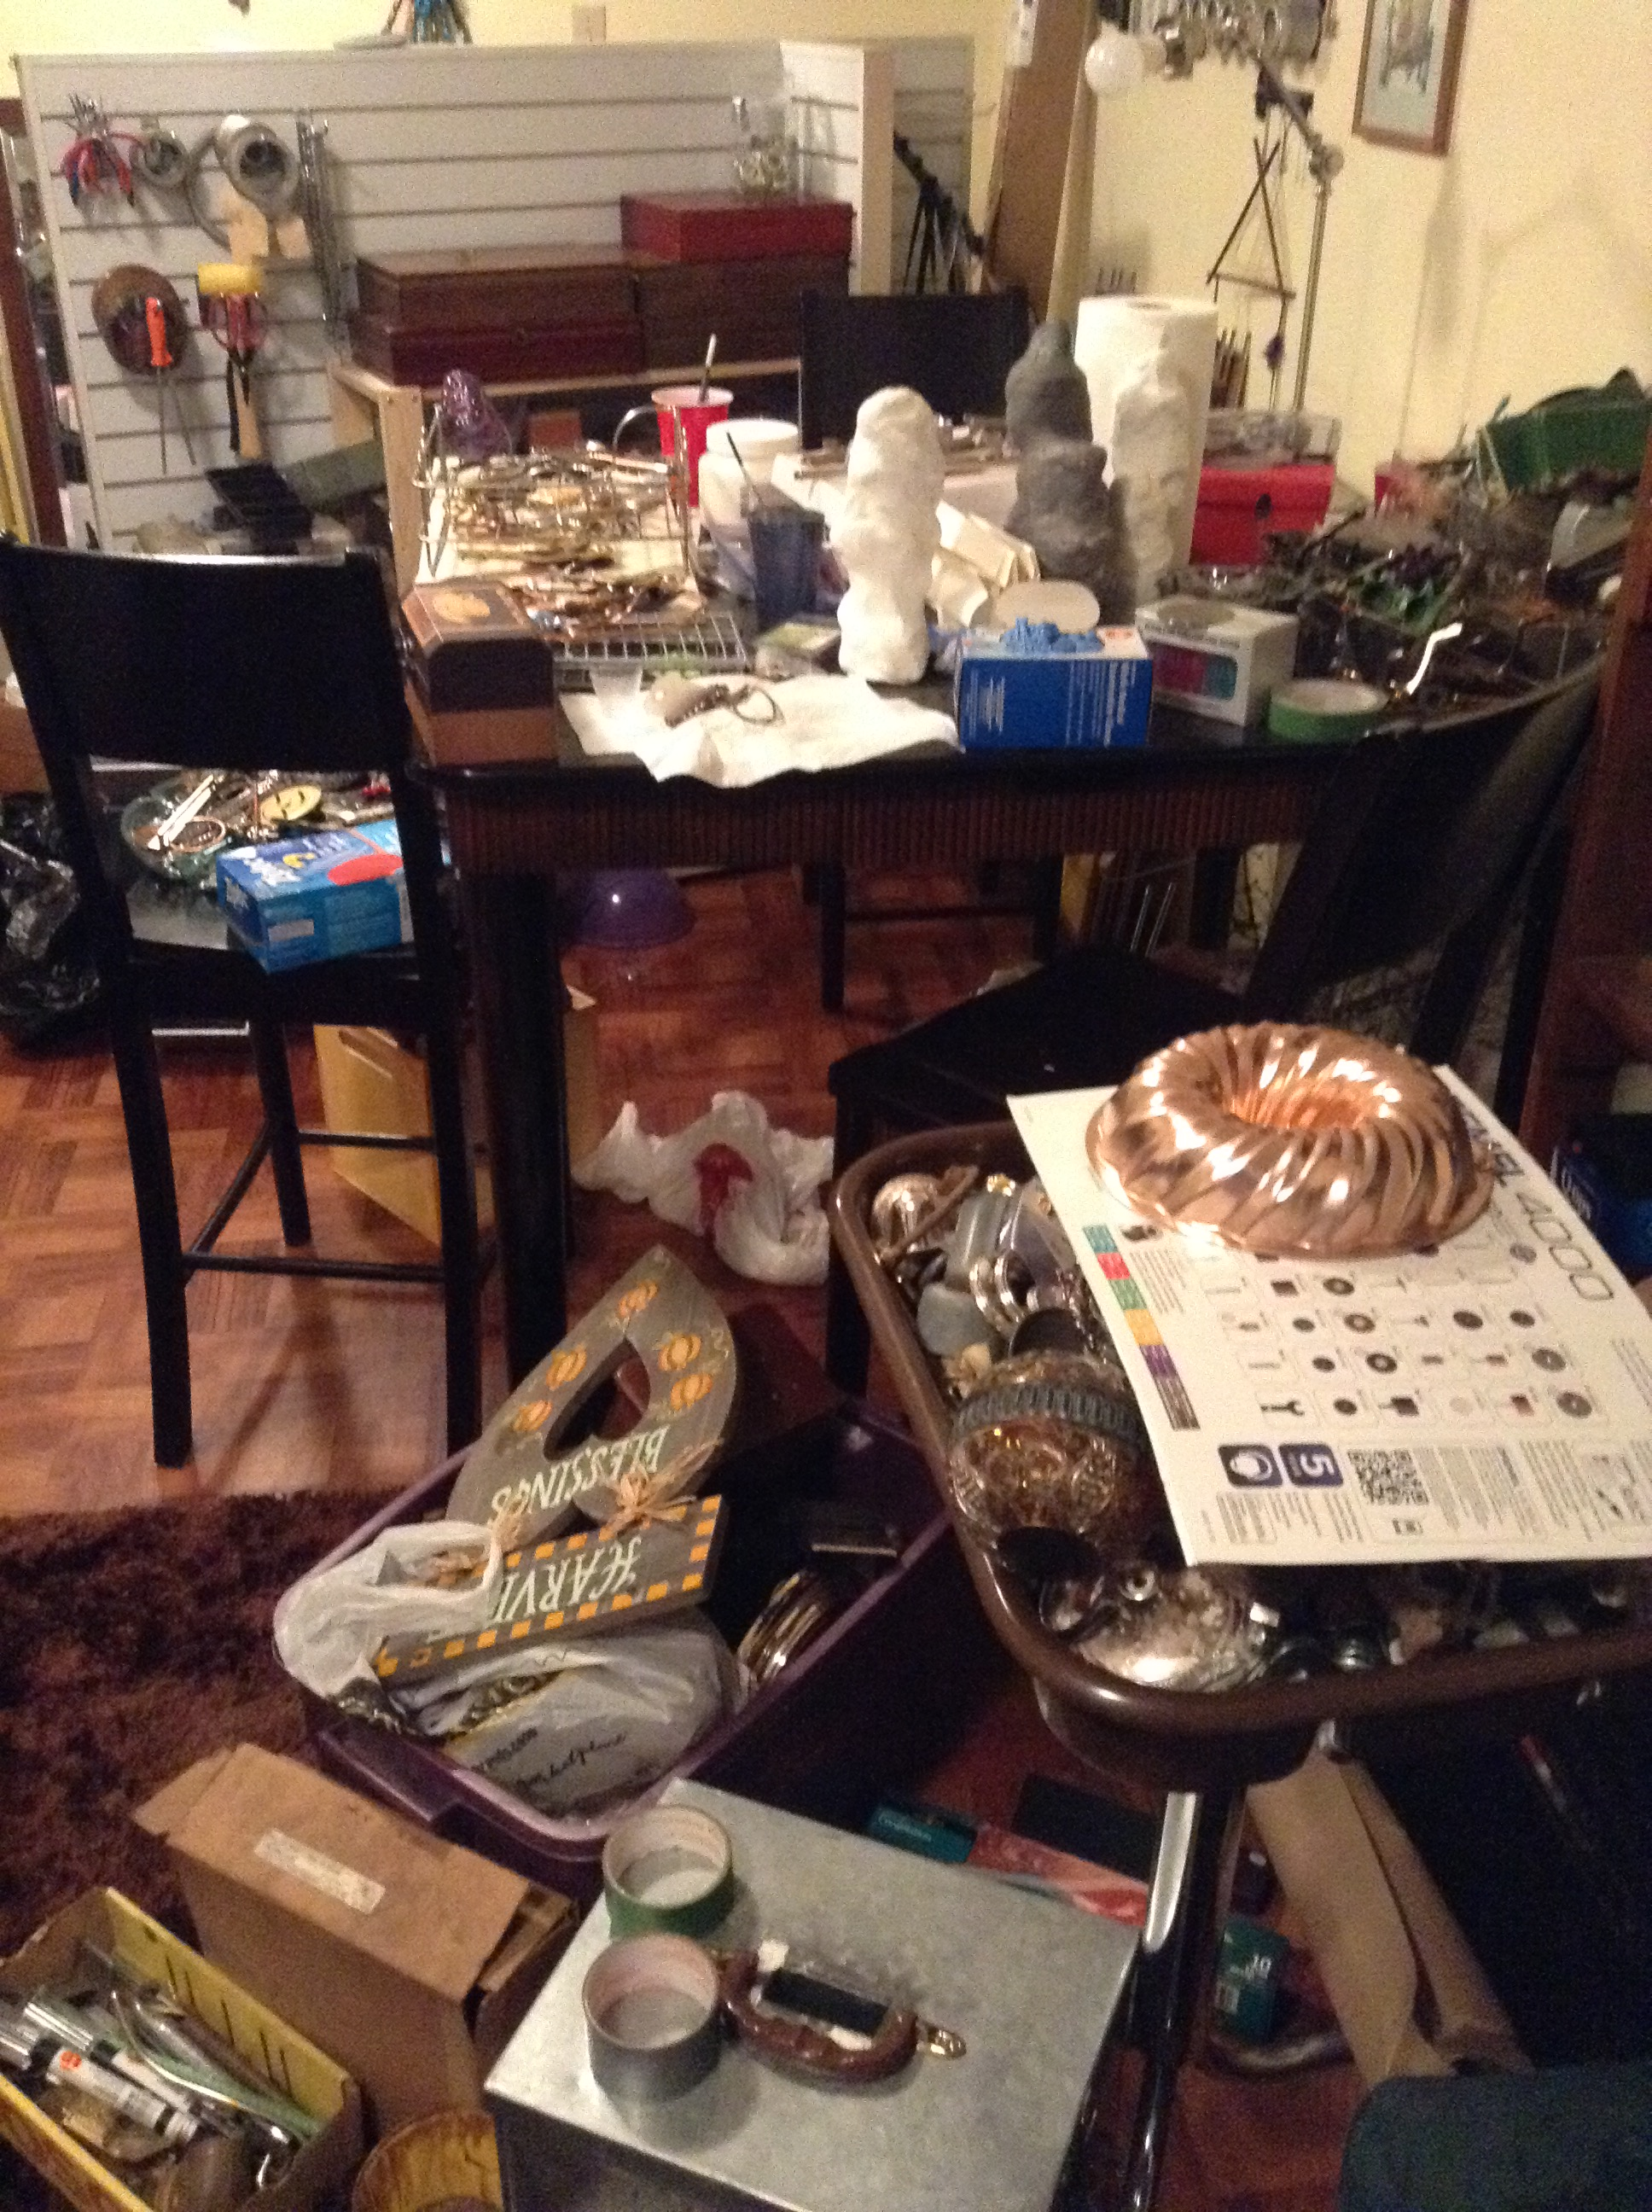 more mess in my workspace